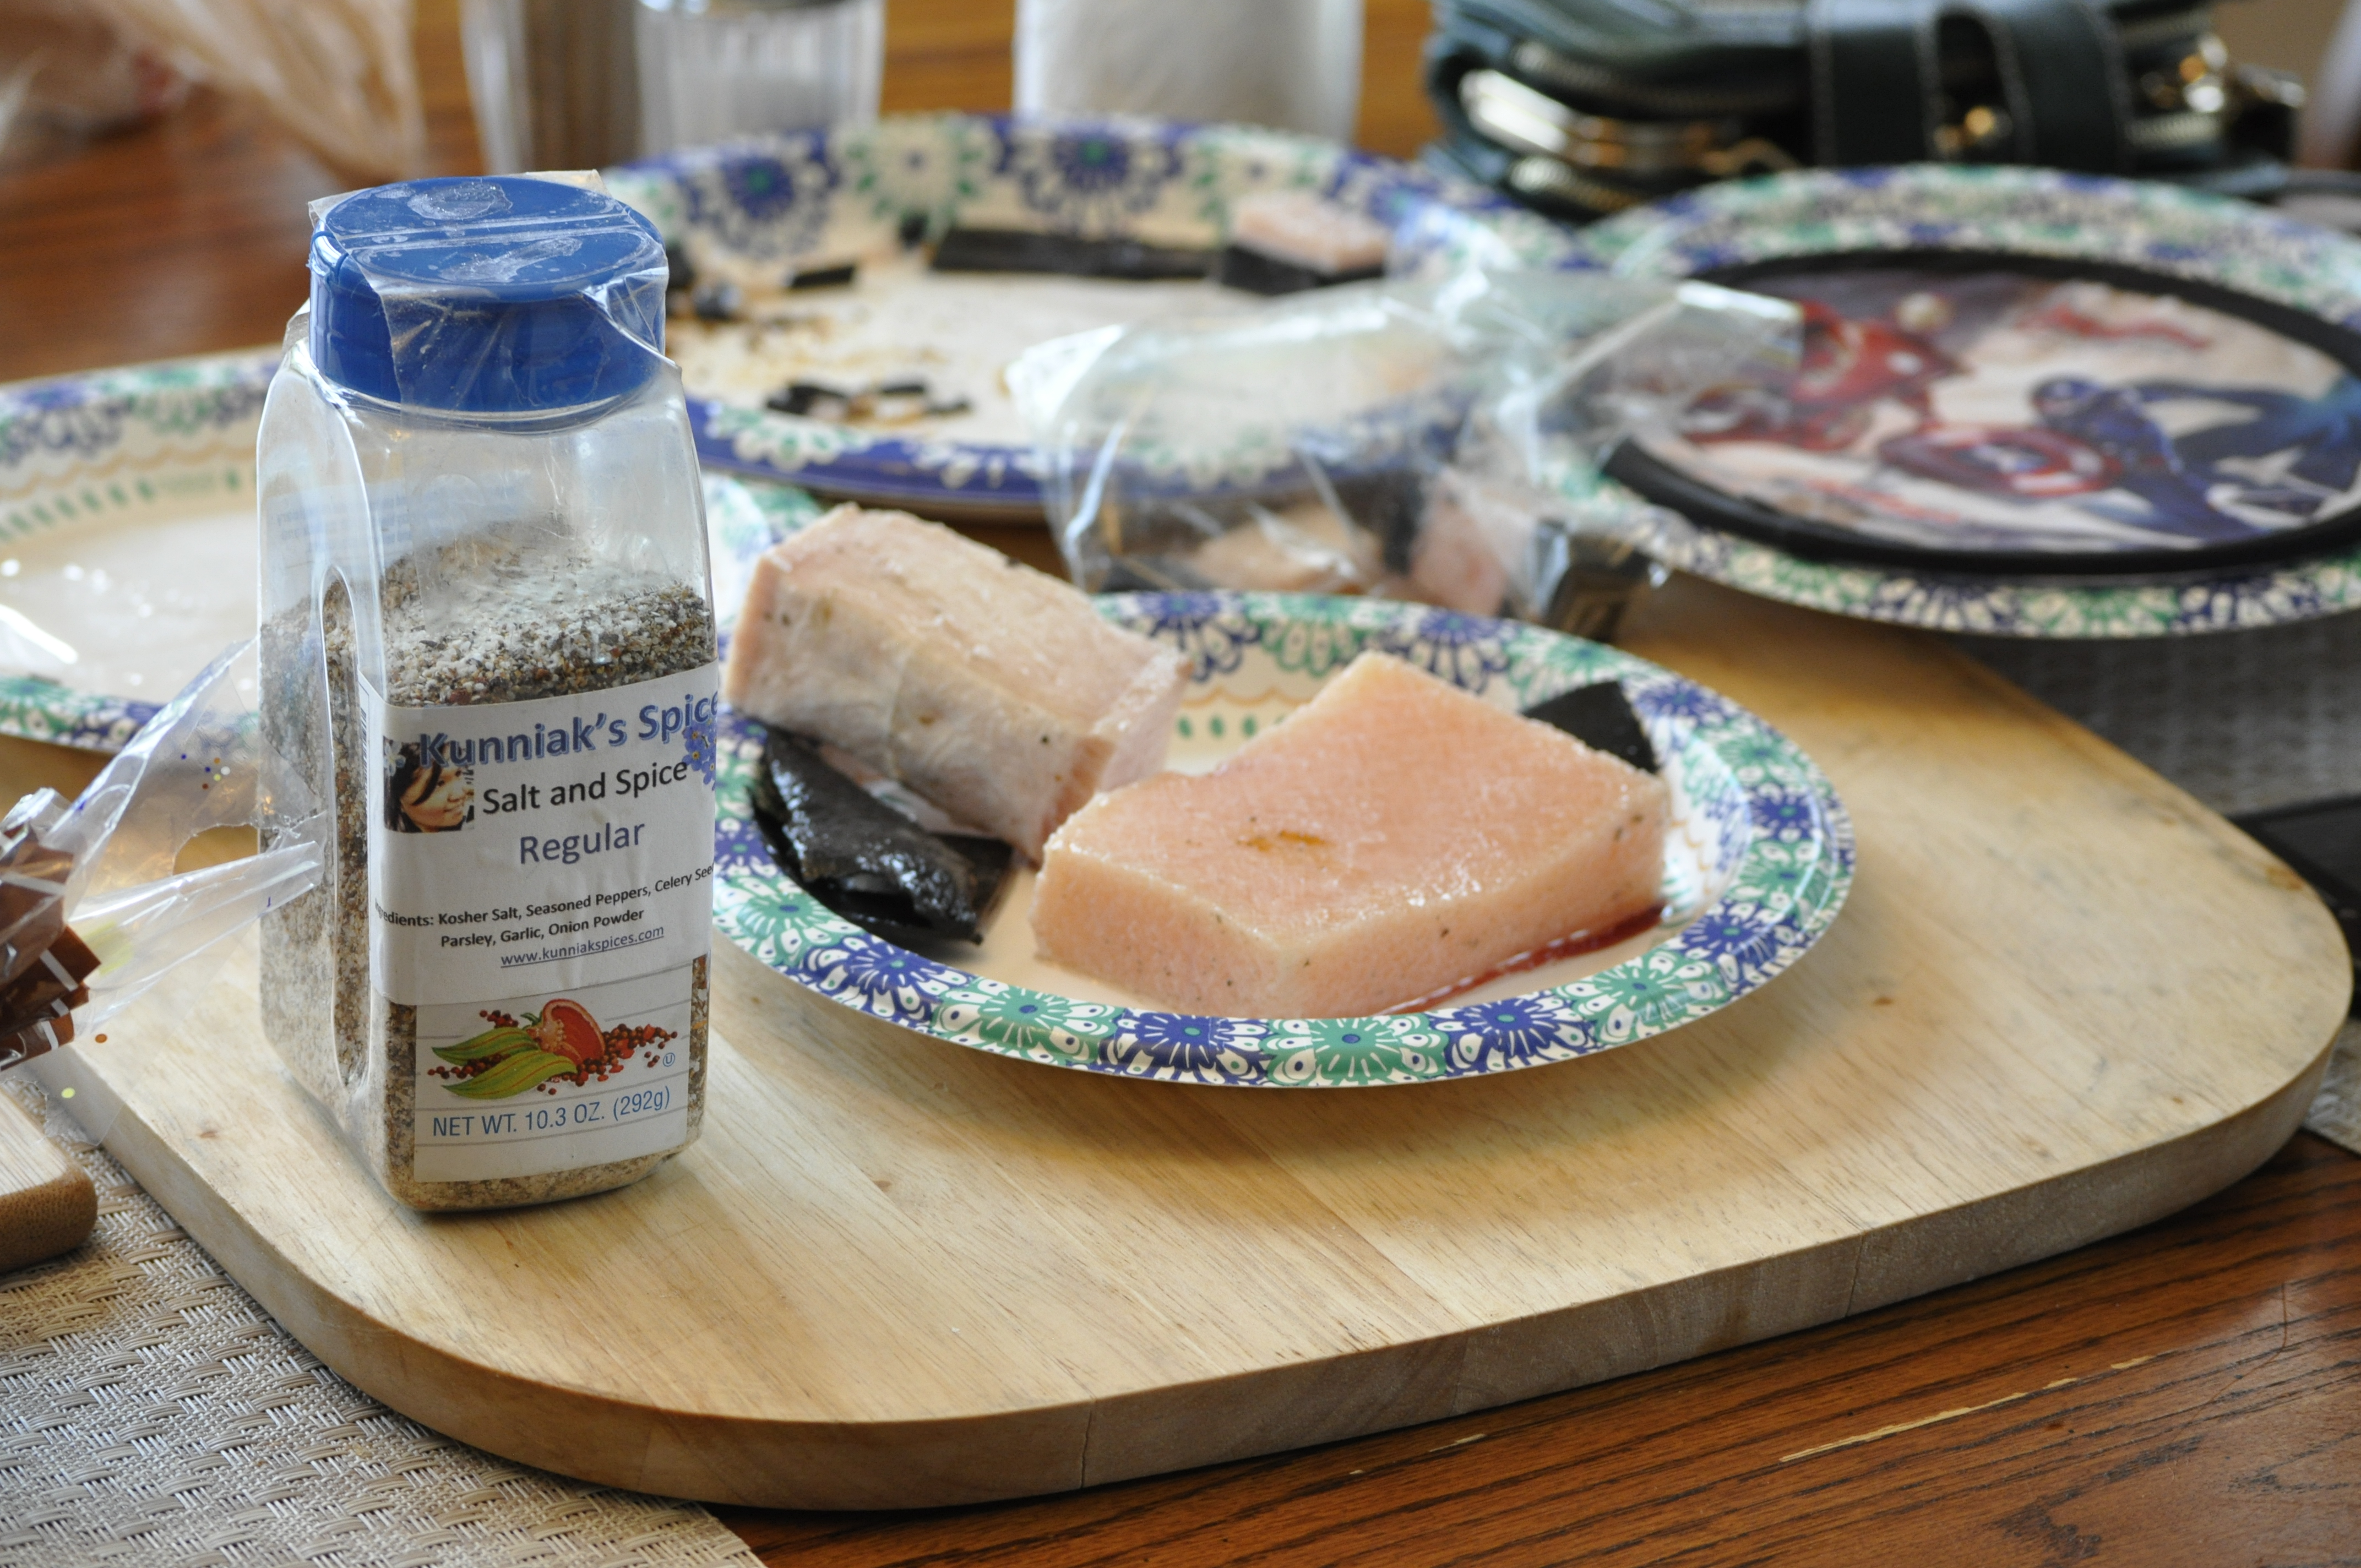 """Kunniak's original Salt and Spice mixture next to a plate of bowhead whale. She now carries 11 different flavors, including """"Black Lava"""" and """"Ghost Blend."""" (Photo by Erin McKinstry/Alaska Public Media)"""